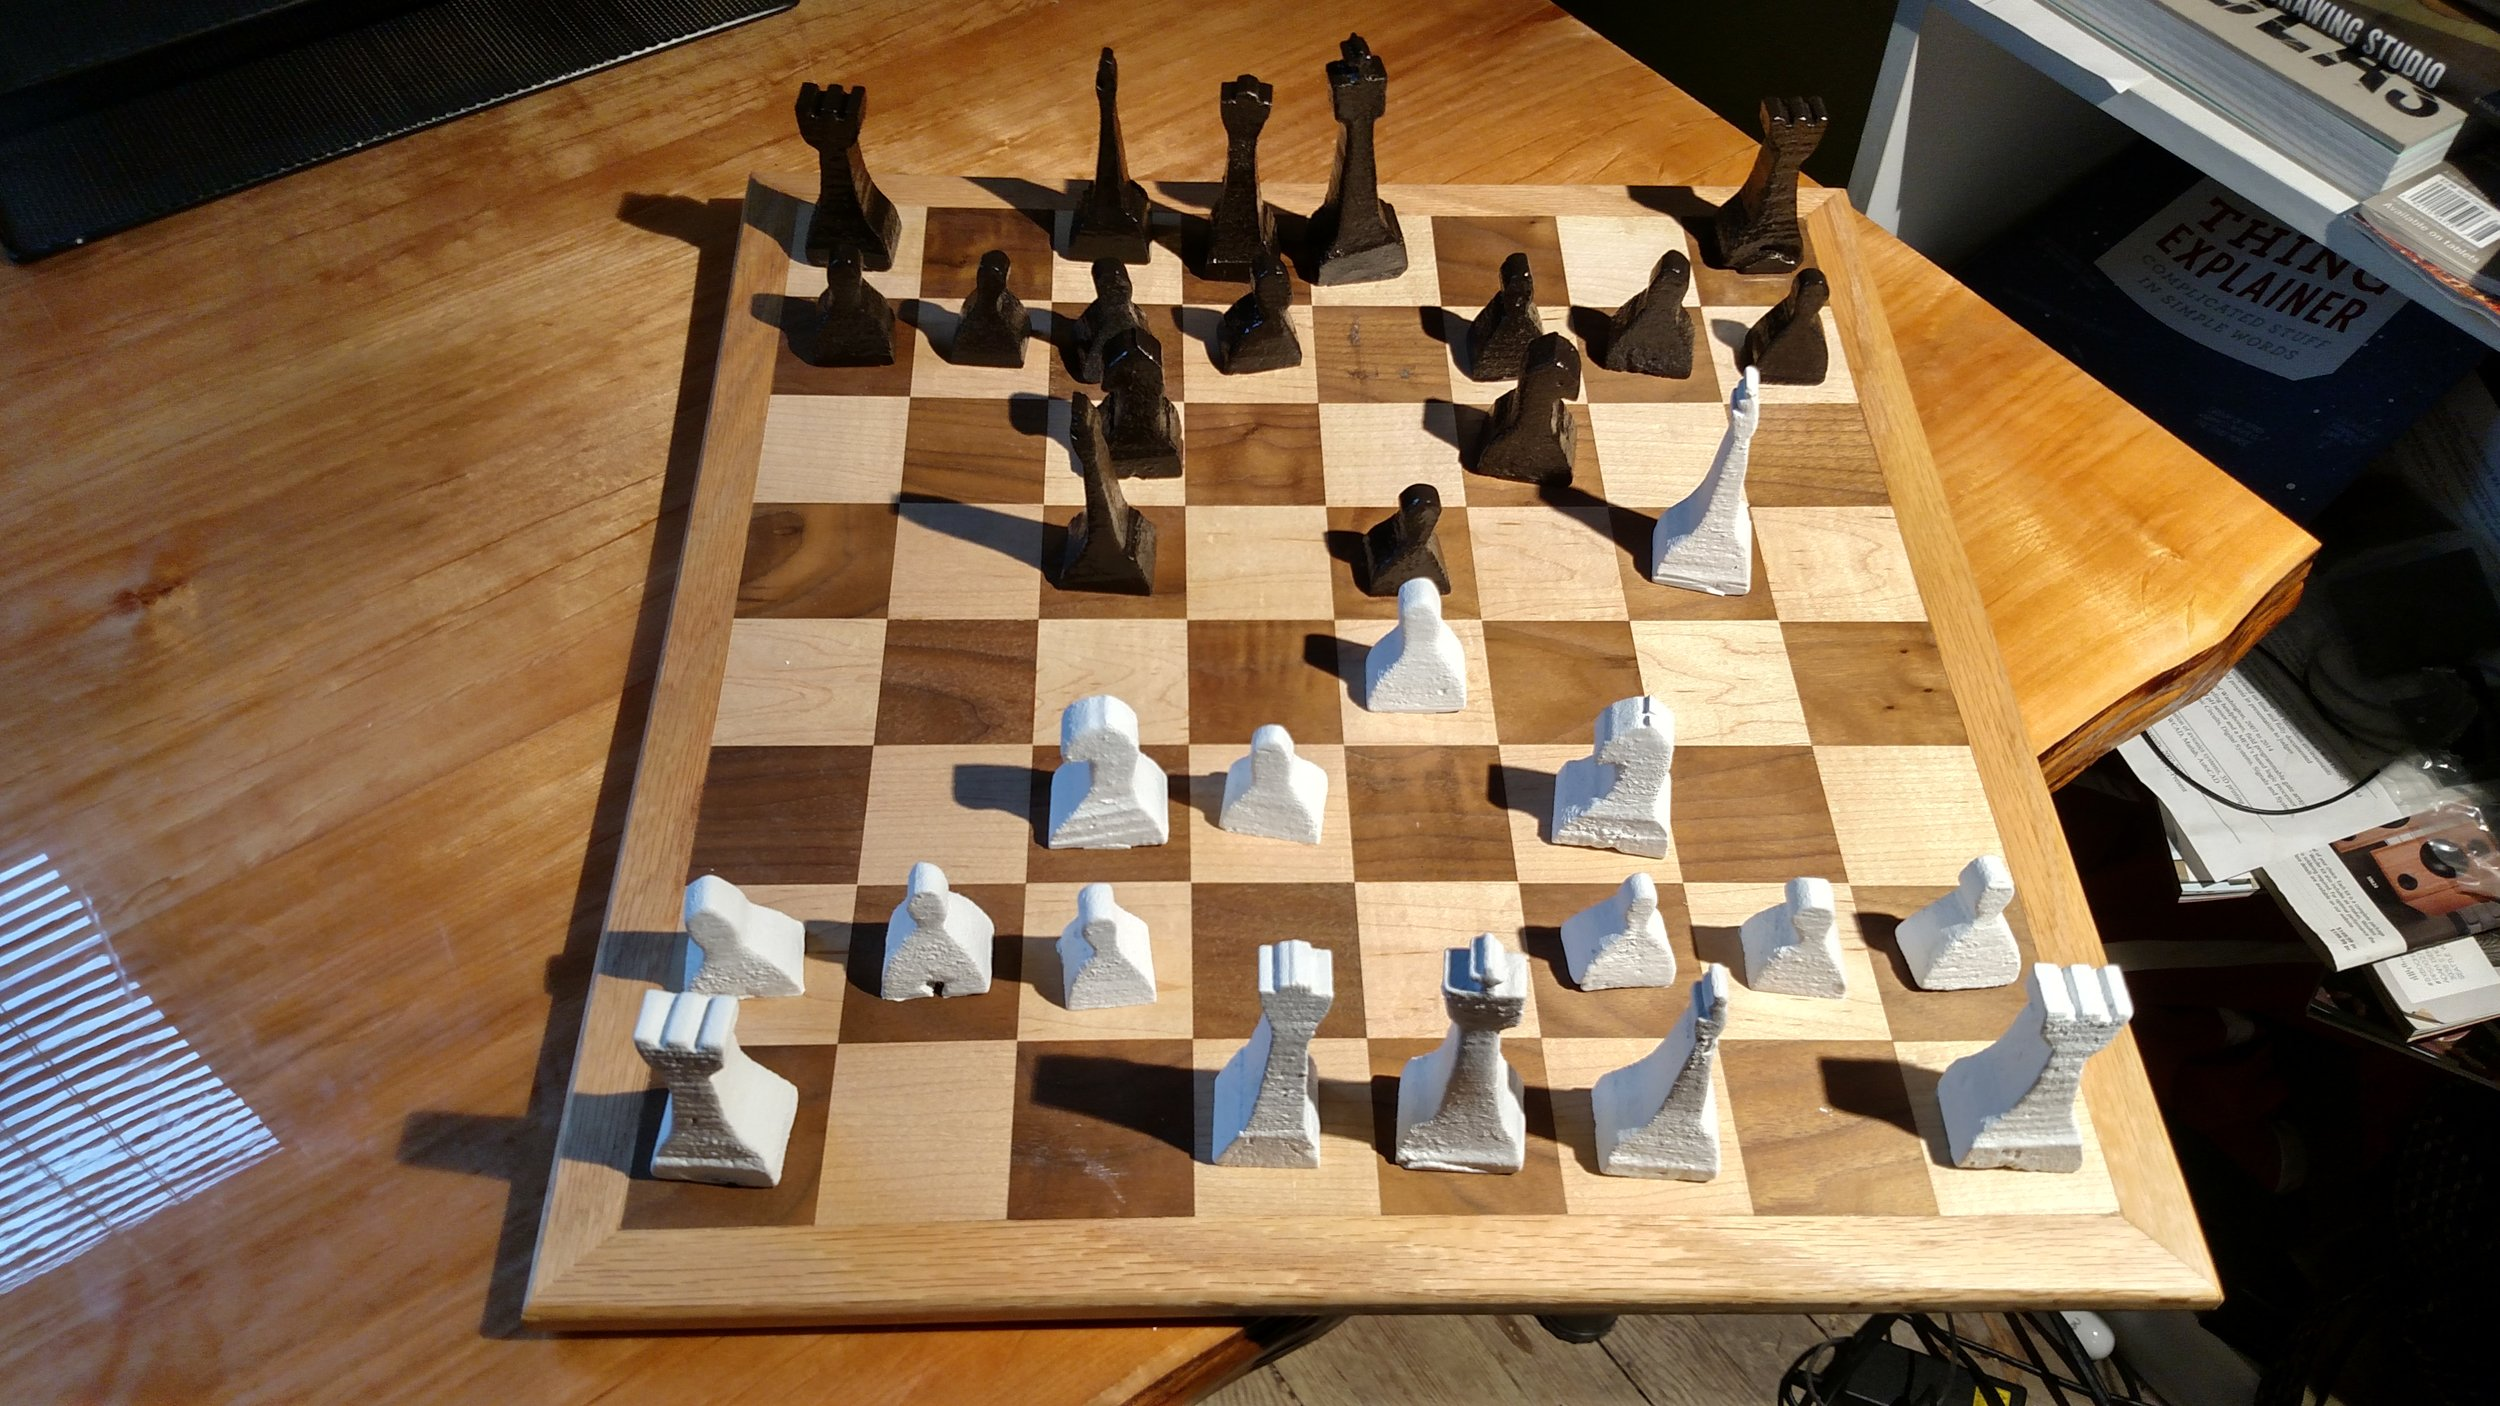 A game being played with the cast Aluminum set.